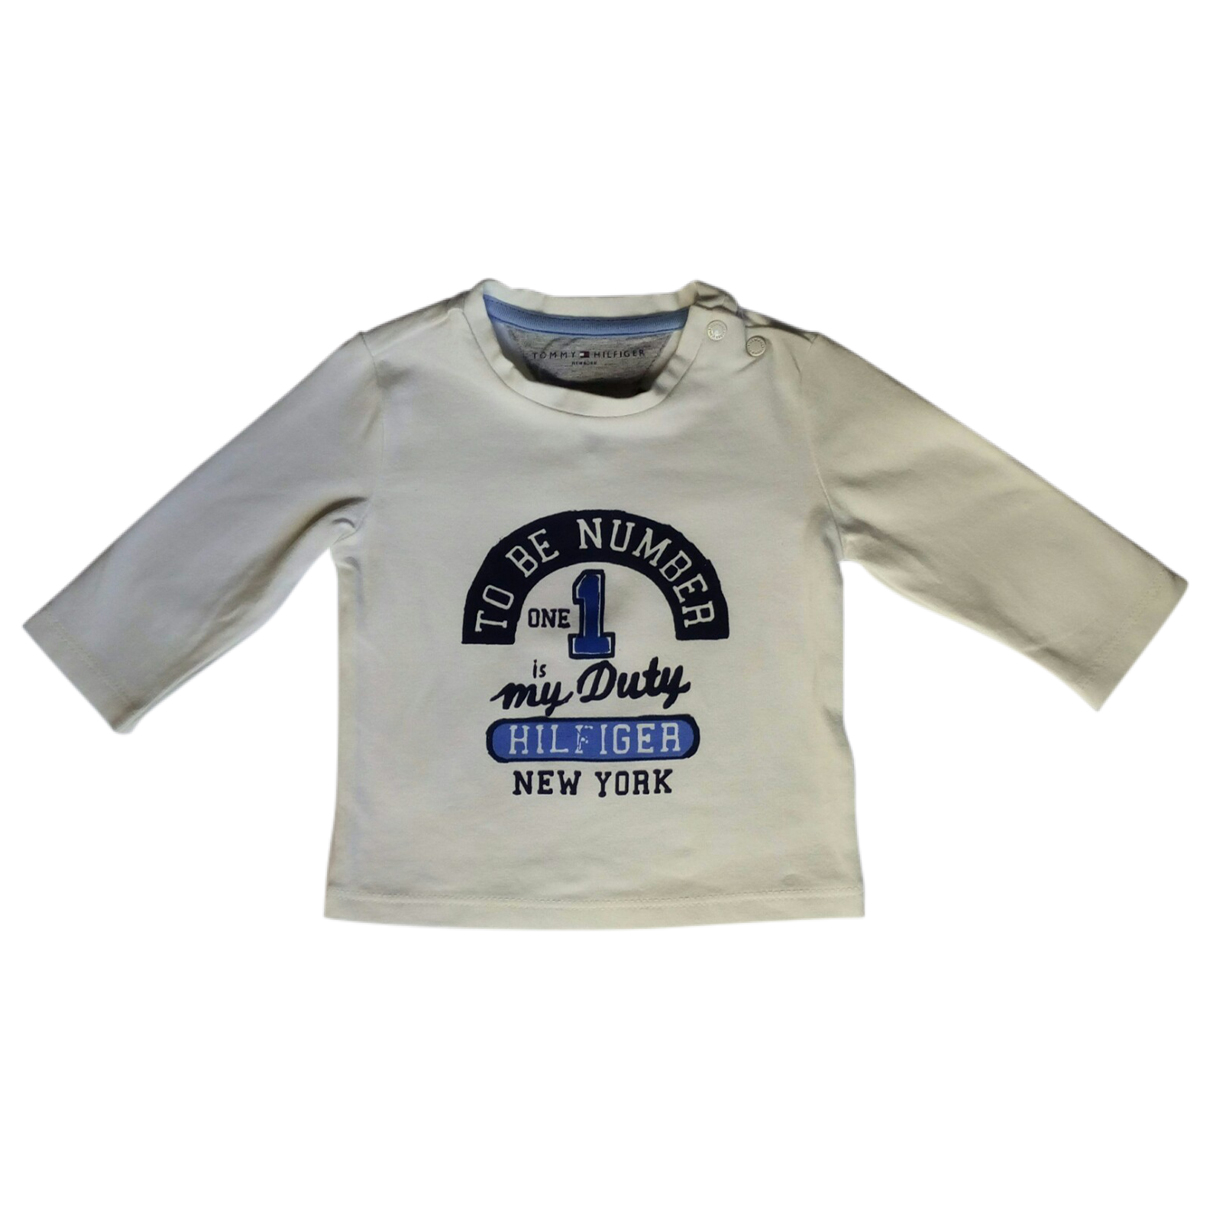 Tommy Hilfiger \N White Cotton  top for Kids 1 months - up to 55cm FR